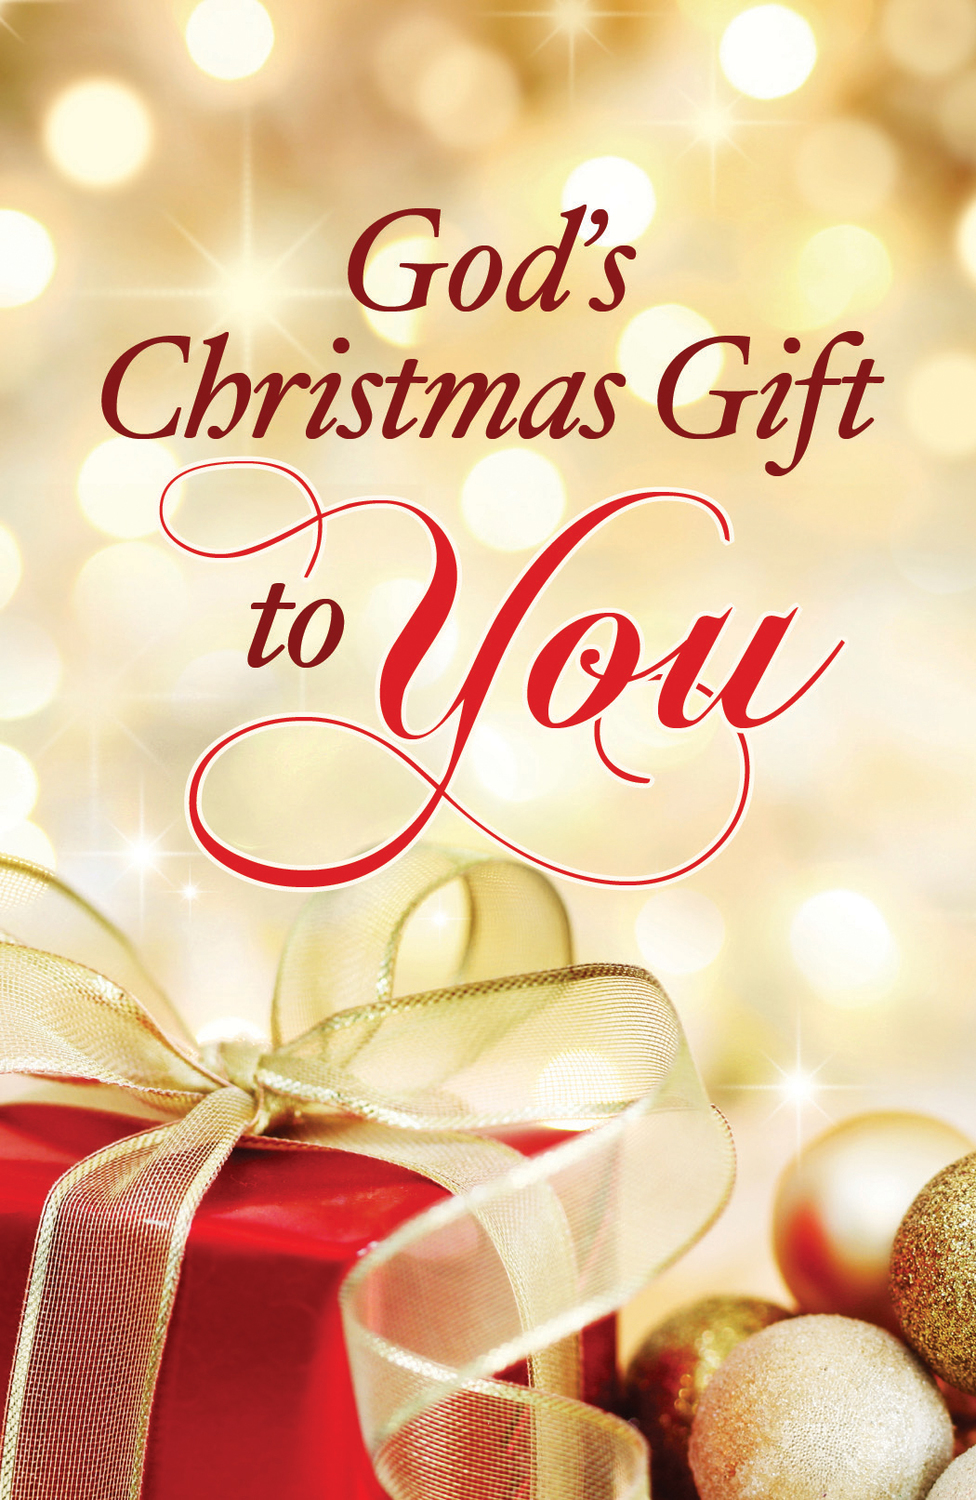 God's Christmas Gift to You